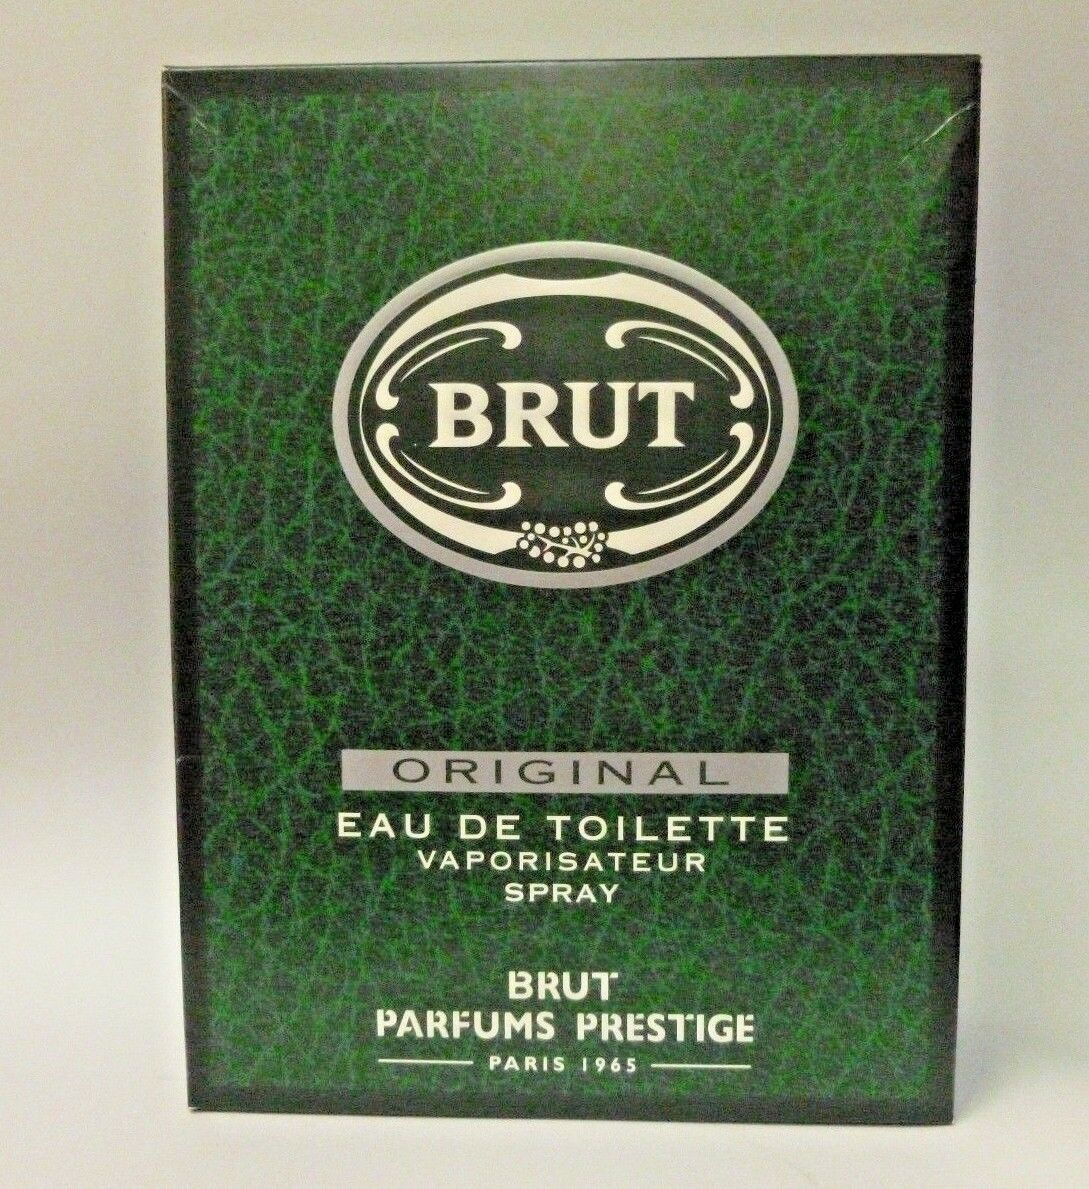 profumi: Brut Original parfums Prestige eau de toilette uomo homme man 100 ml spray